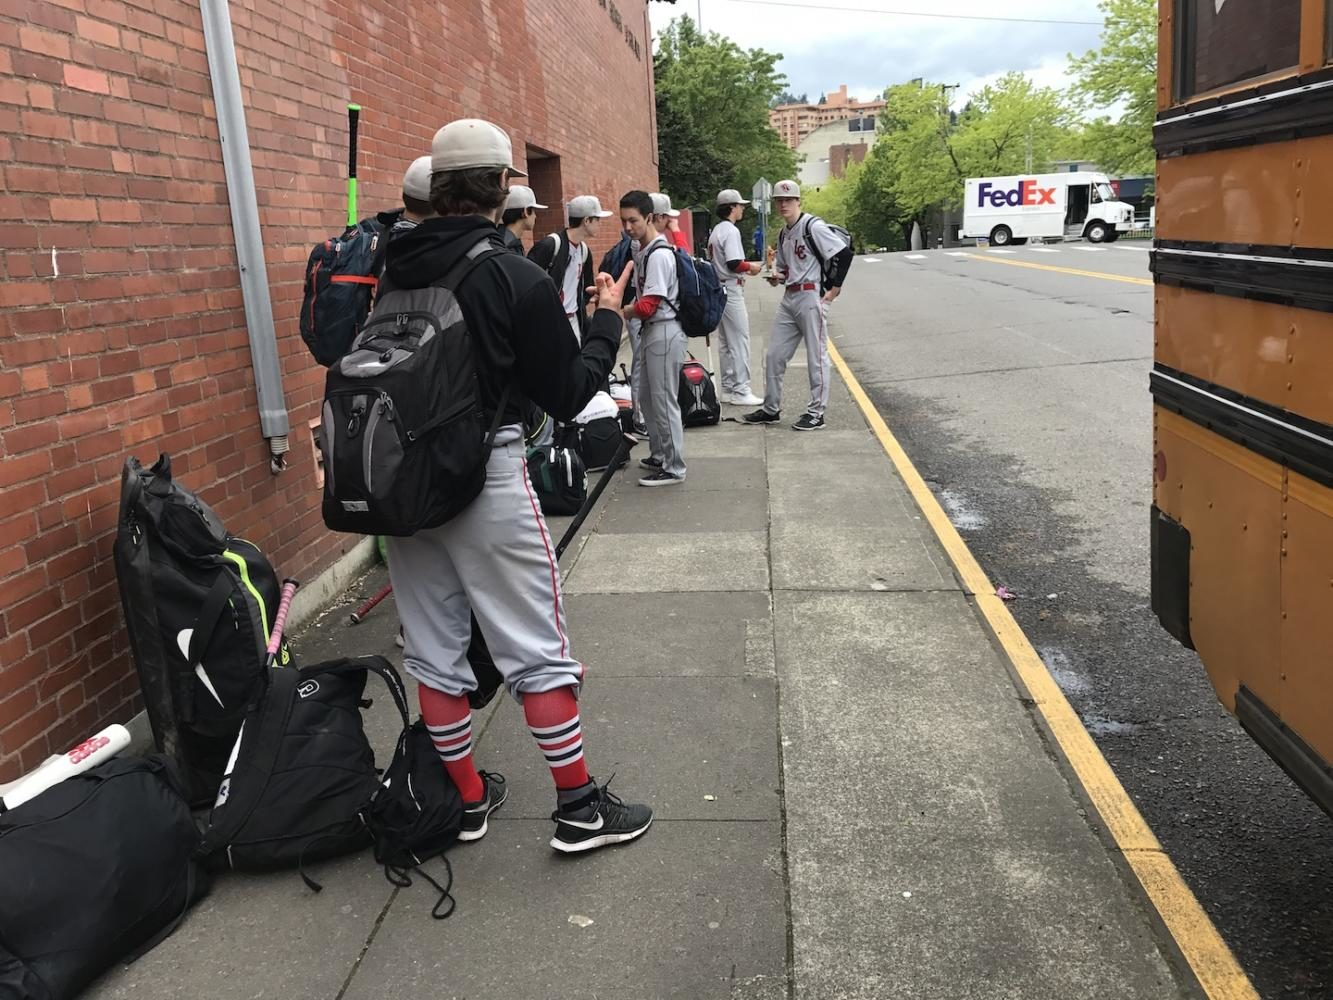 The+JV+baseball+team+waits+for+a+bus+outside+Lincoln+last+month.+Members+of+that+team+say+they+have+been+stuck+for+hours+waiting+on+buses+to+pick+them+up+after+games.